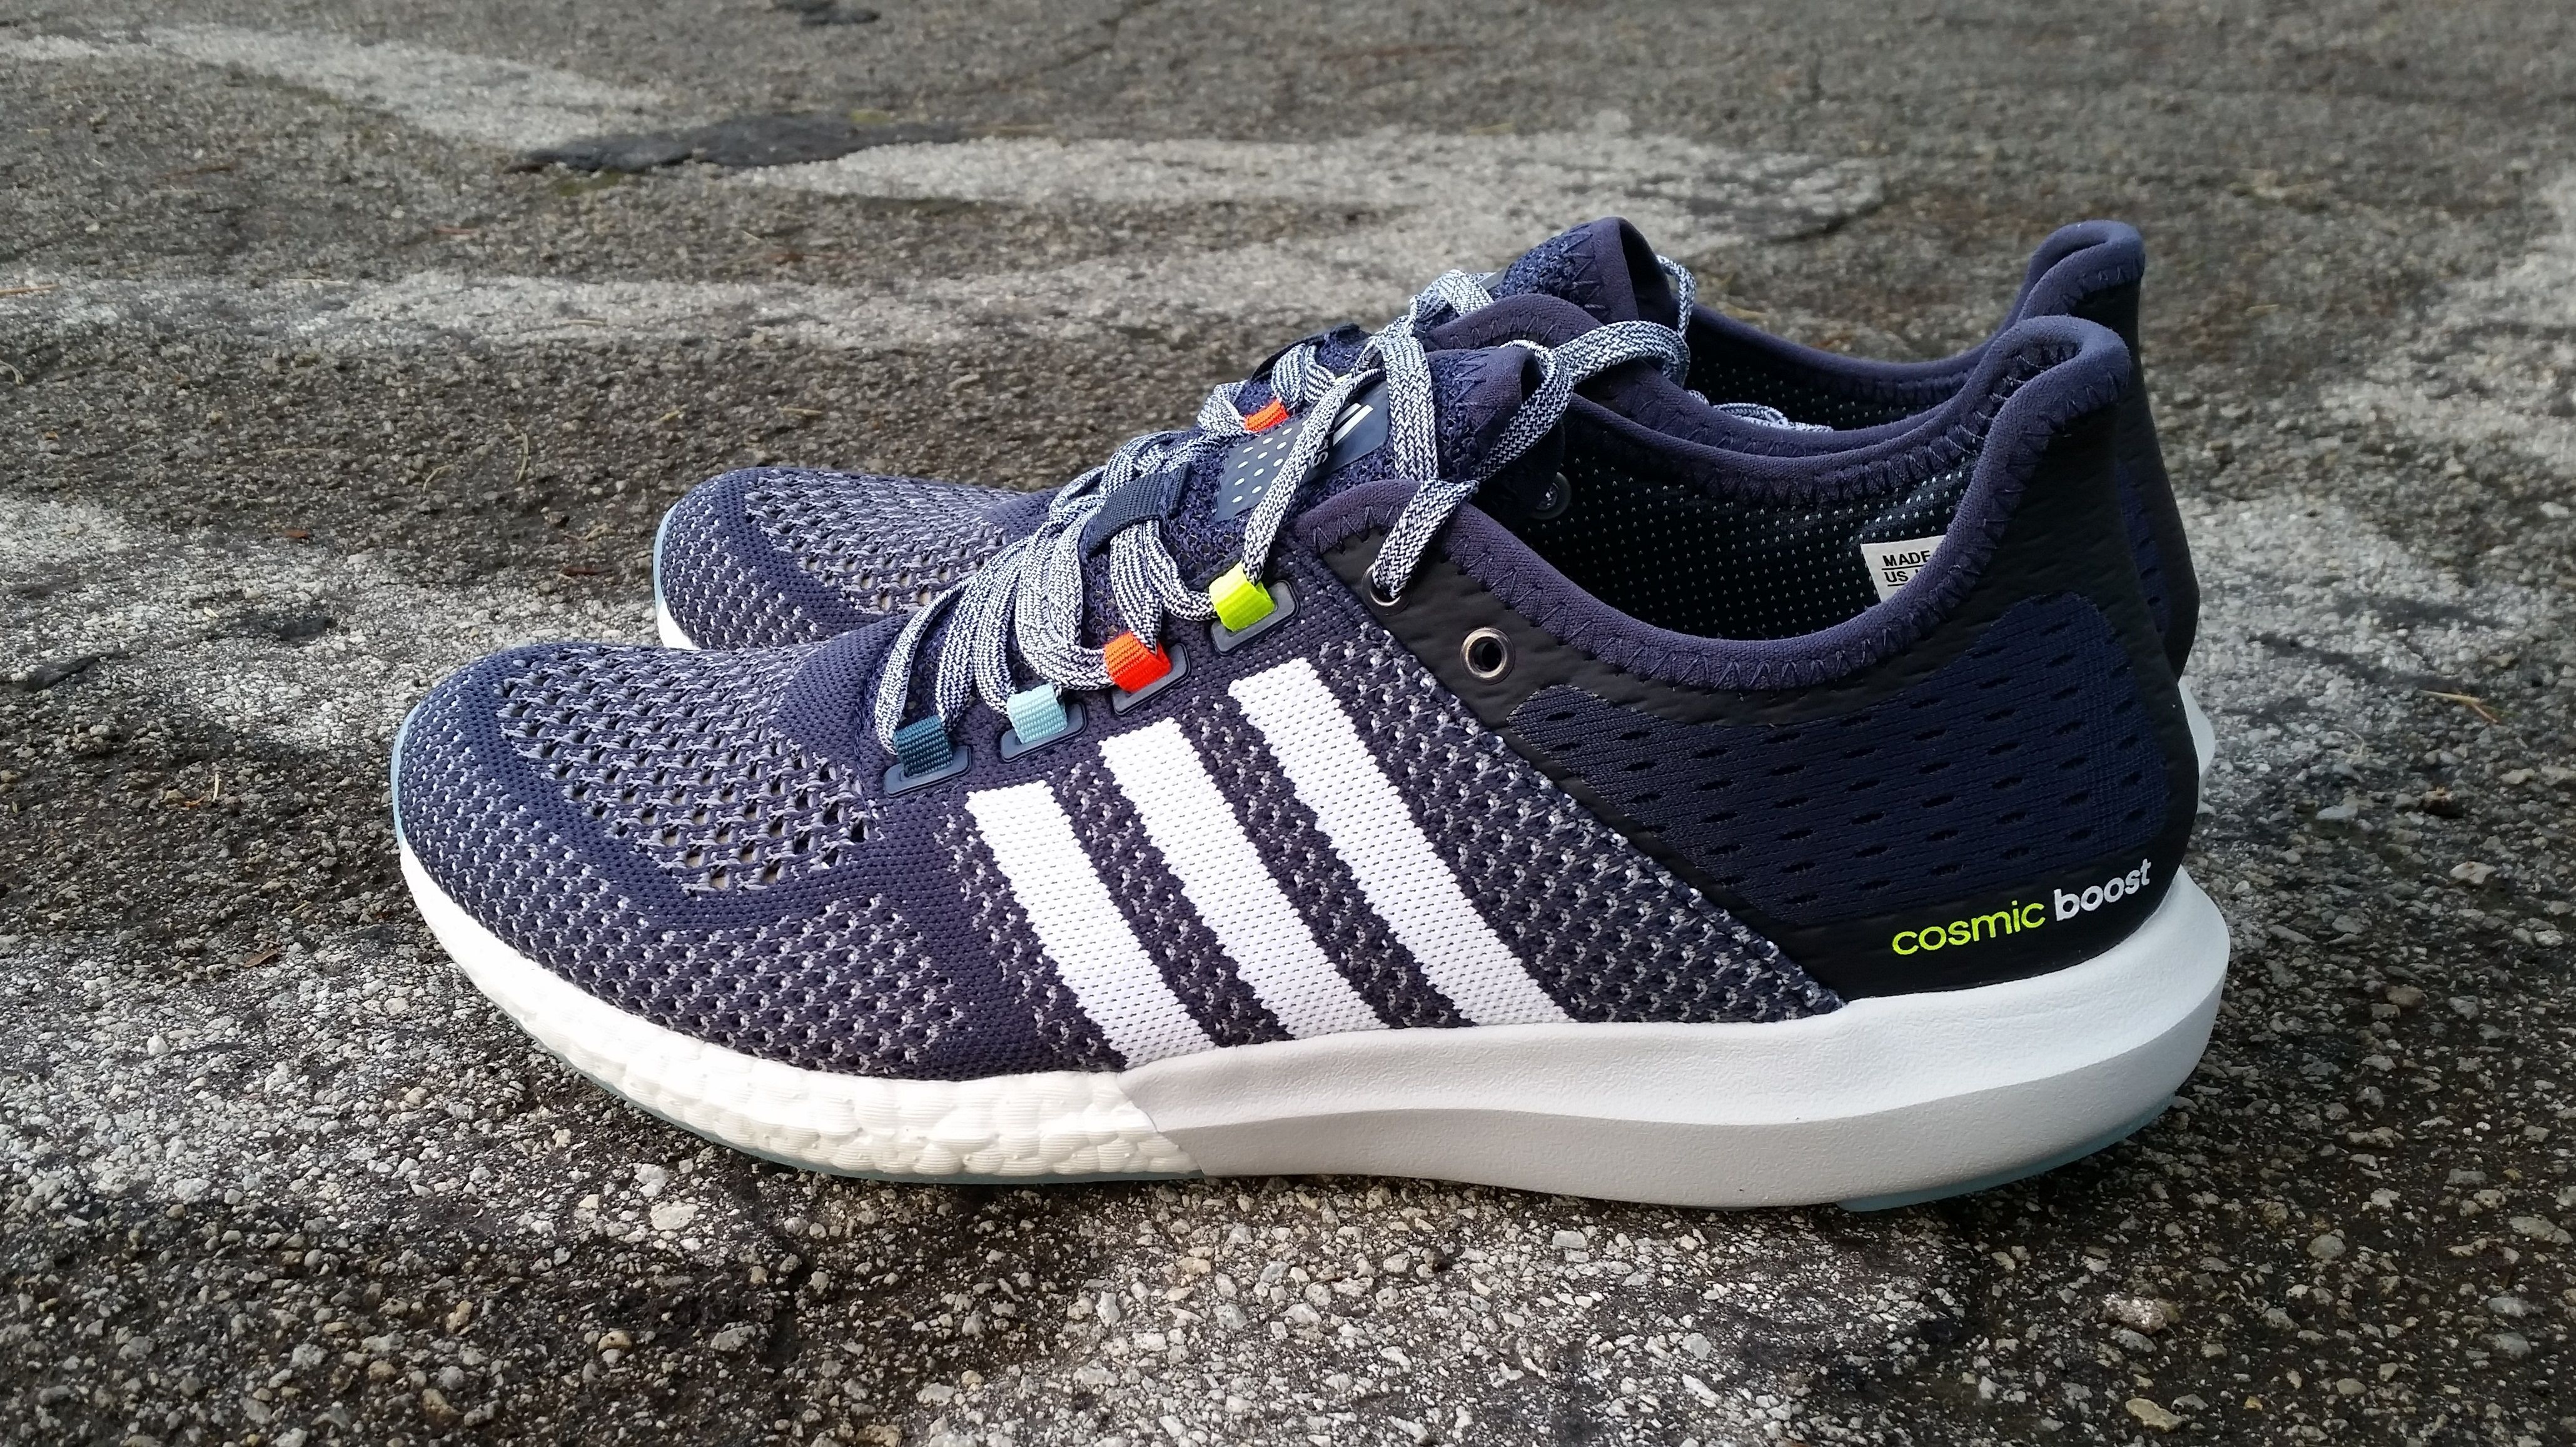 59a684a82106 adidas Climachill Cosmic Boost